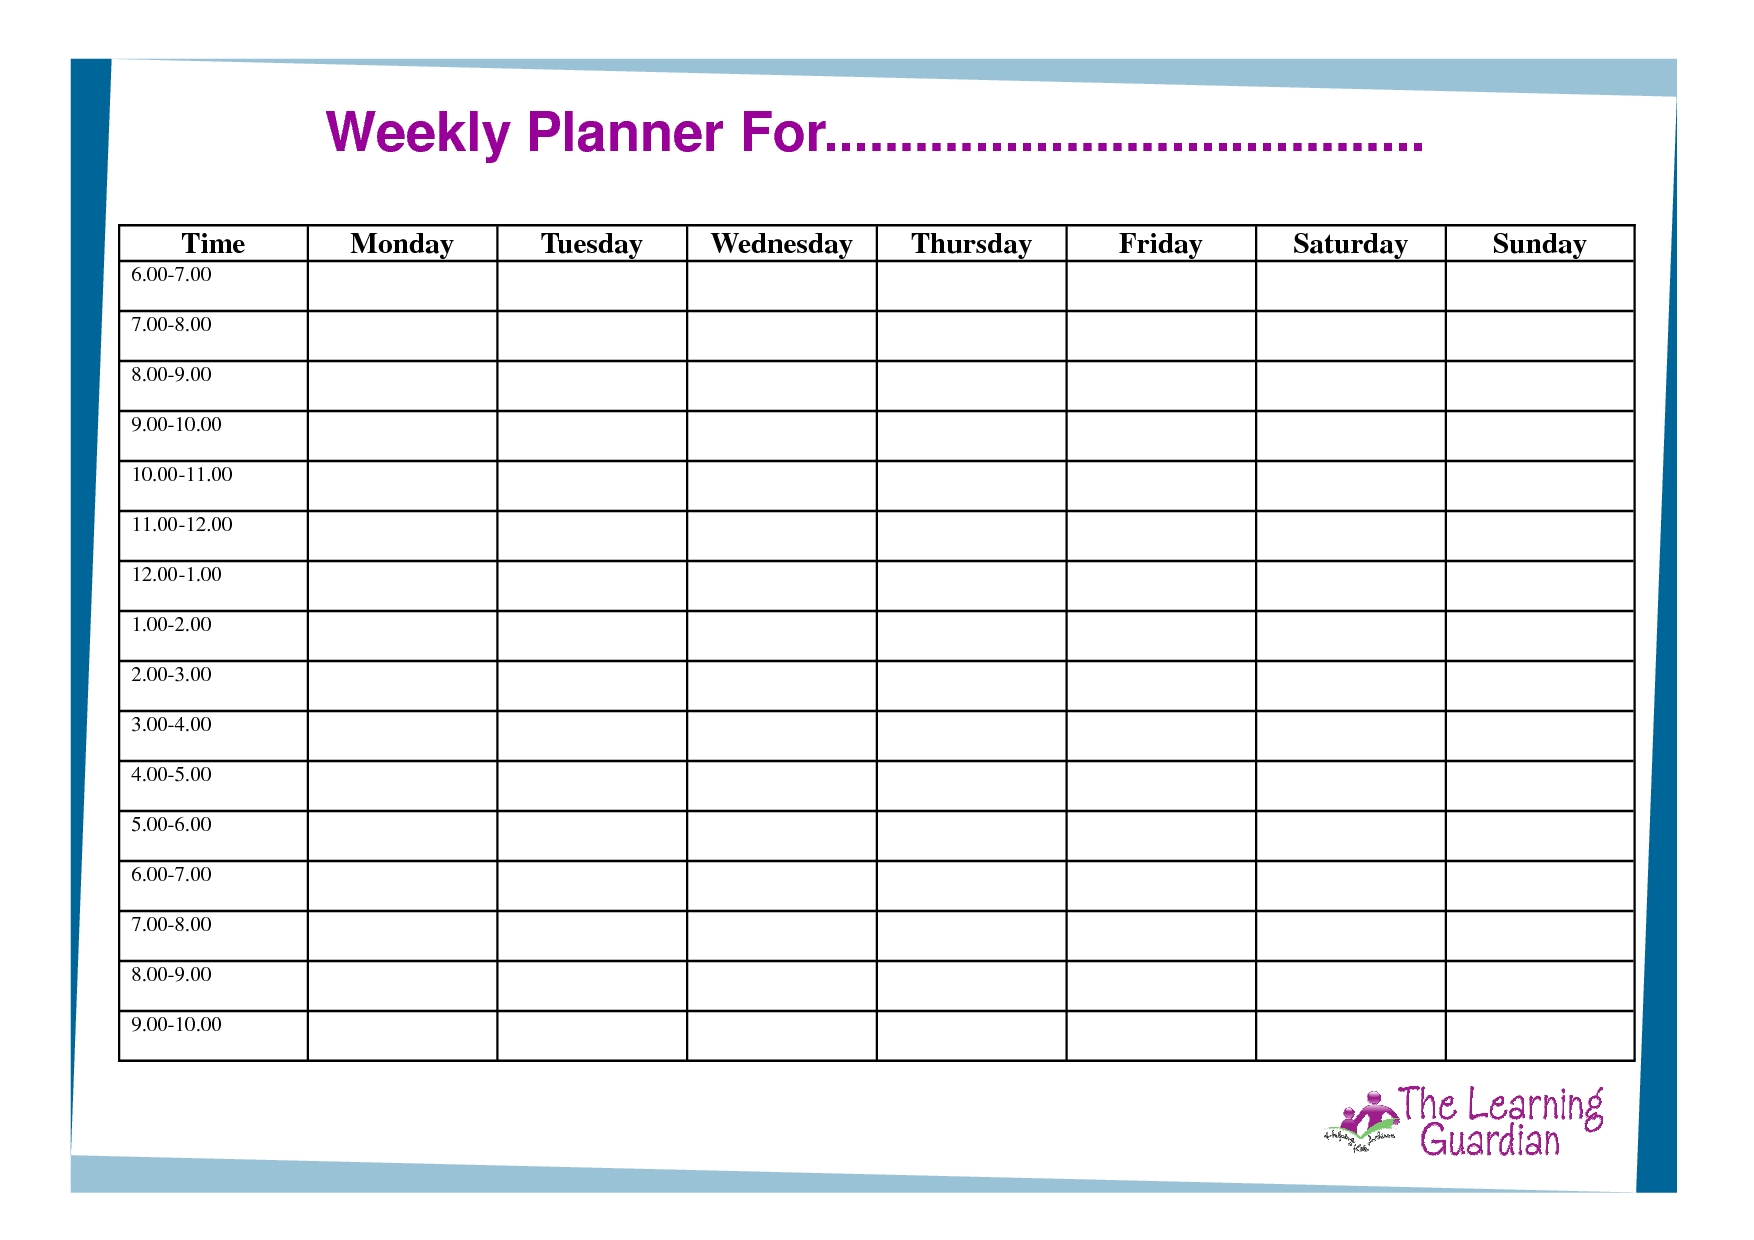 Weekly Planner With Time Slots Word Template  Calendar with Free Weekly Calendar Template With Time Slots